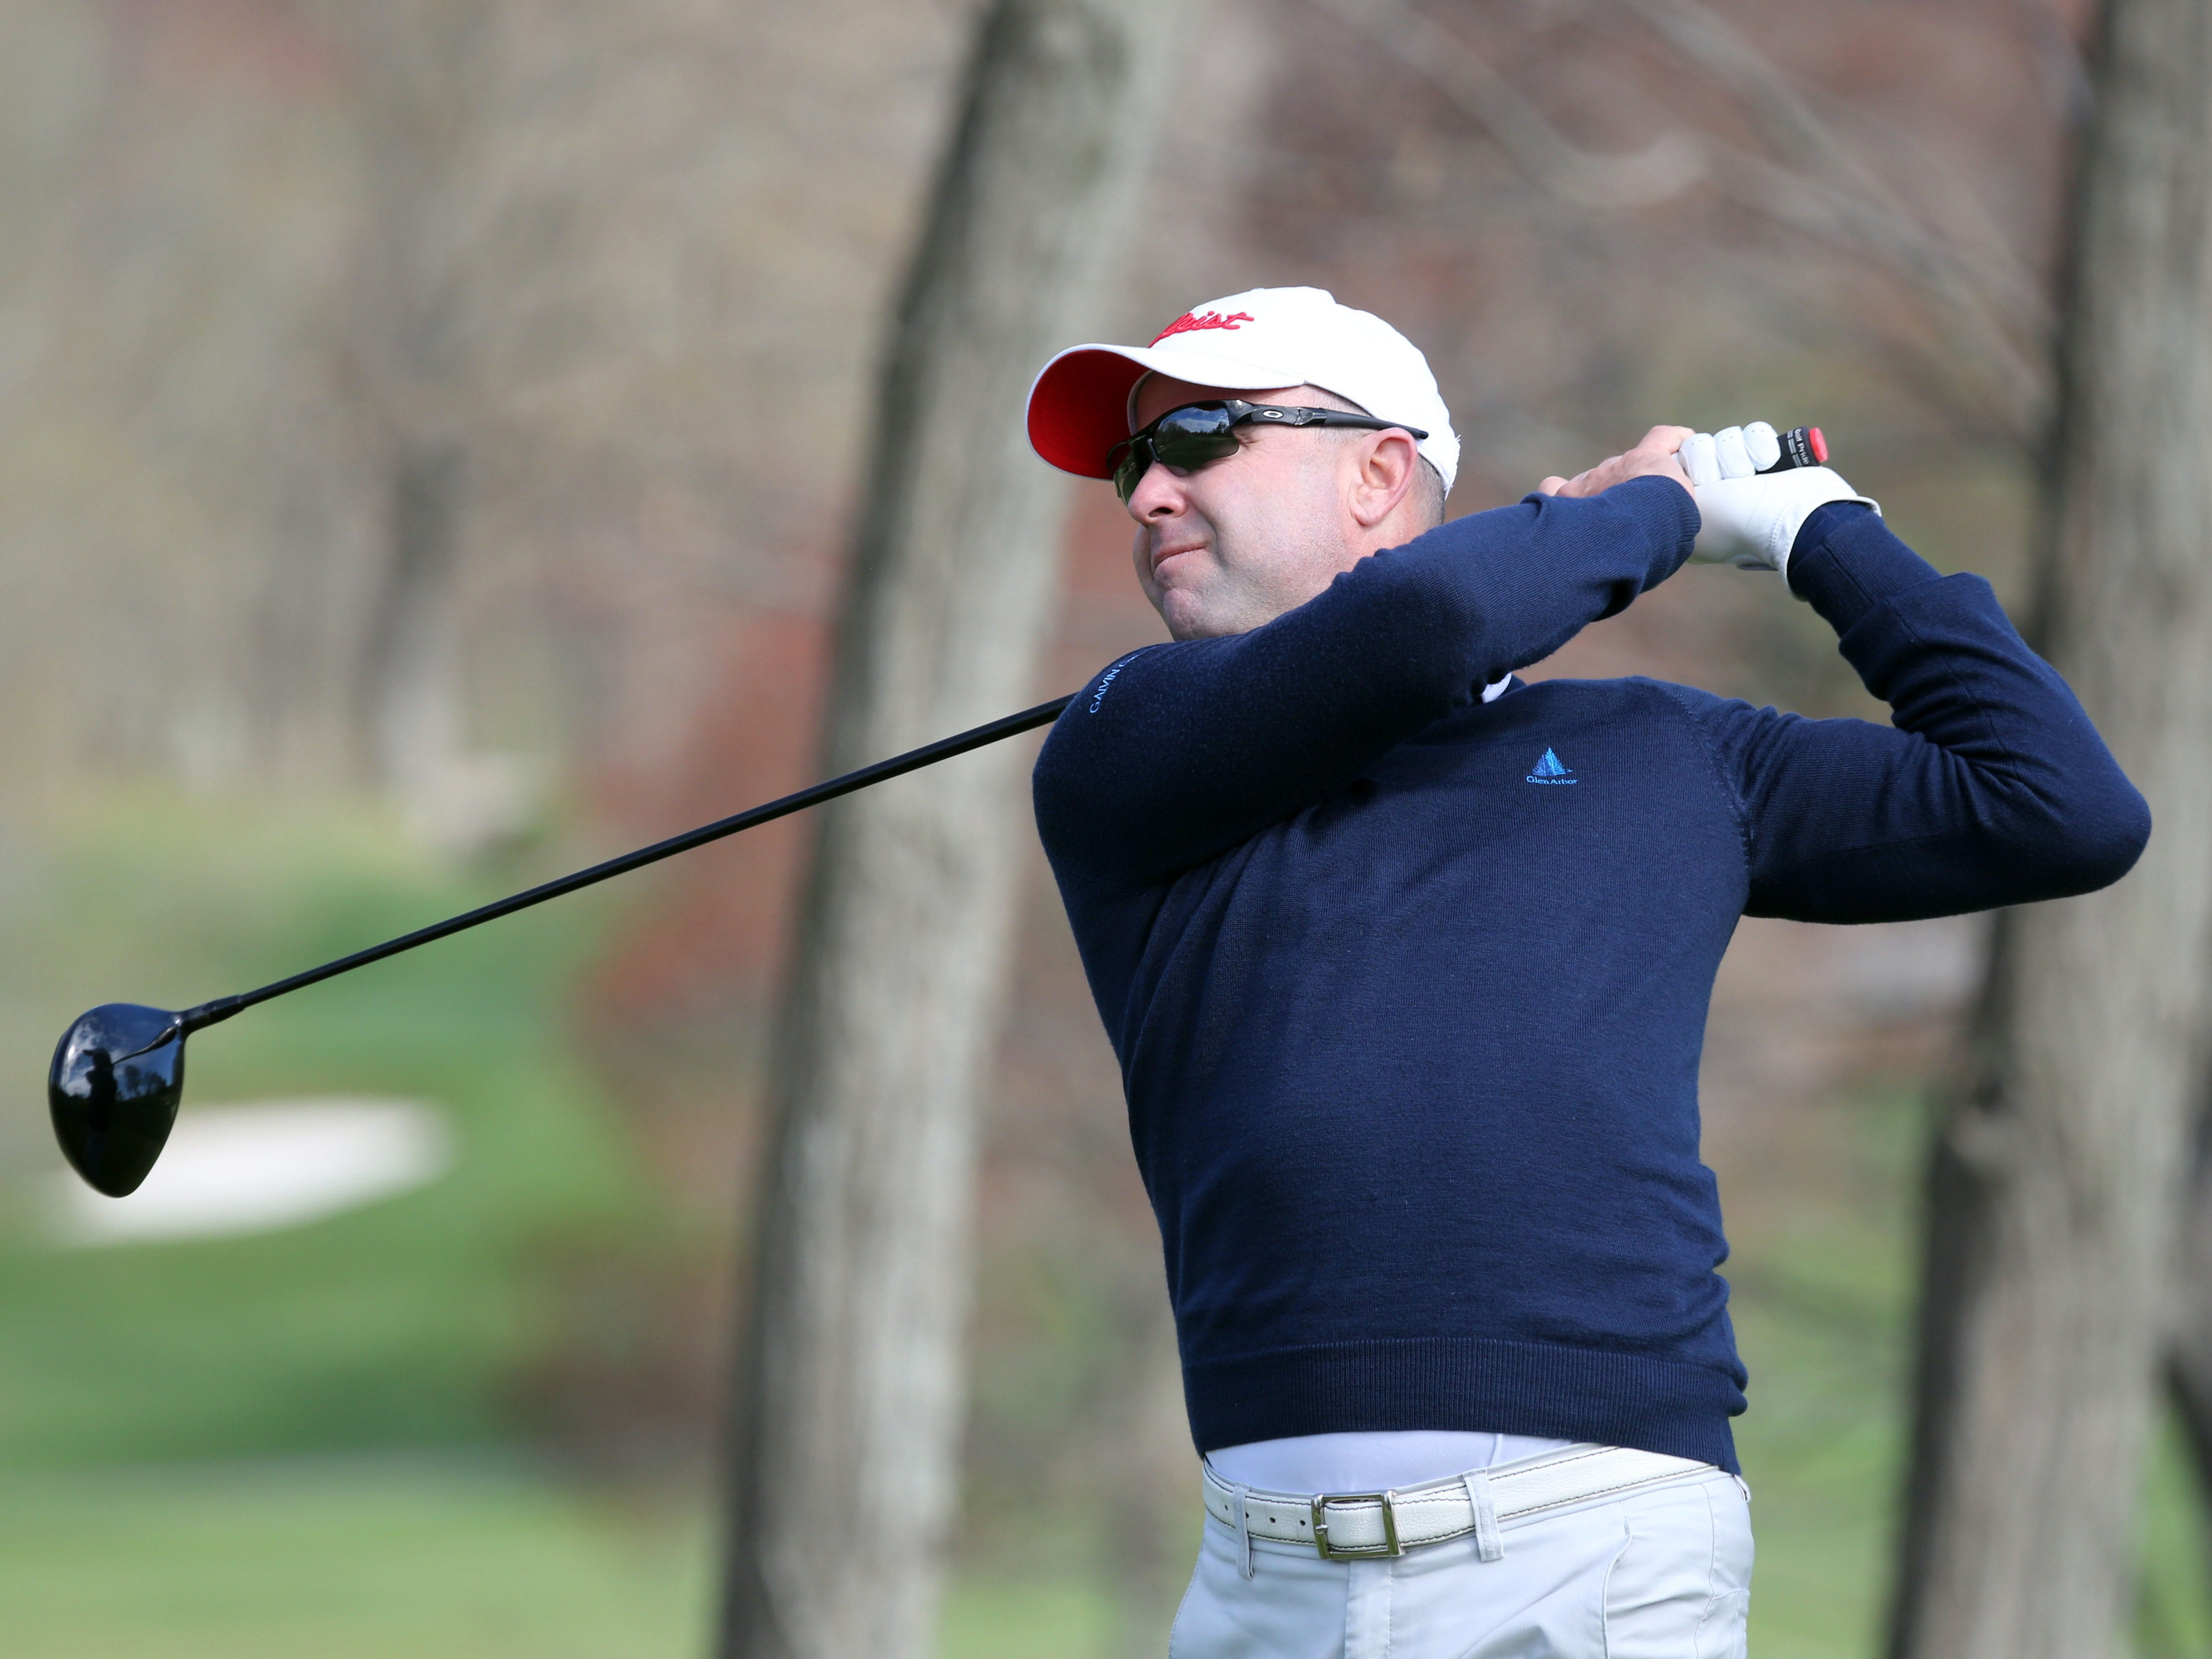 GlenArbor director of golf Rob Labritz is seven strokes off the lead following a 3-under 69 in the second round of the PGA Professional Championship at Turning Stone.